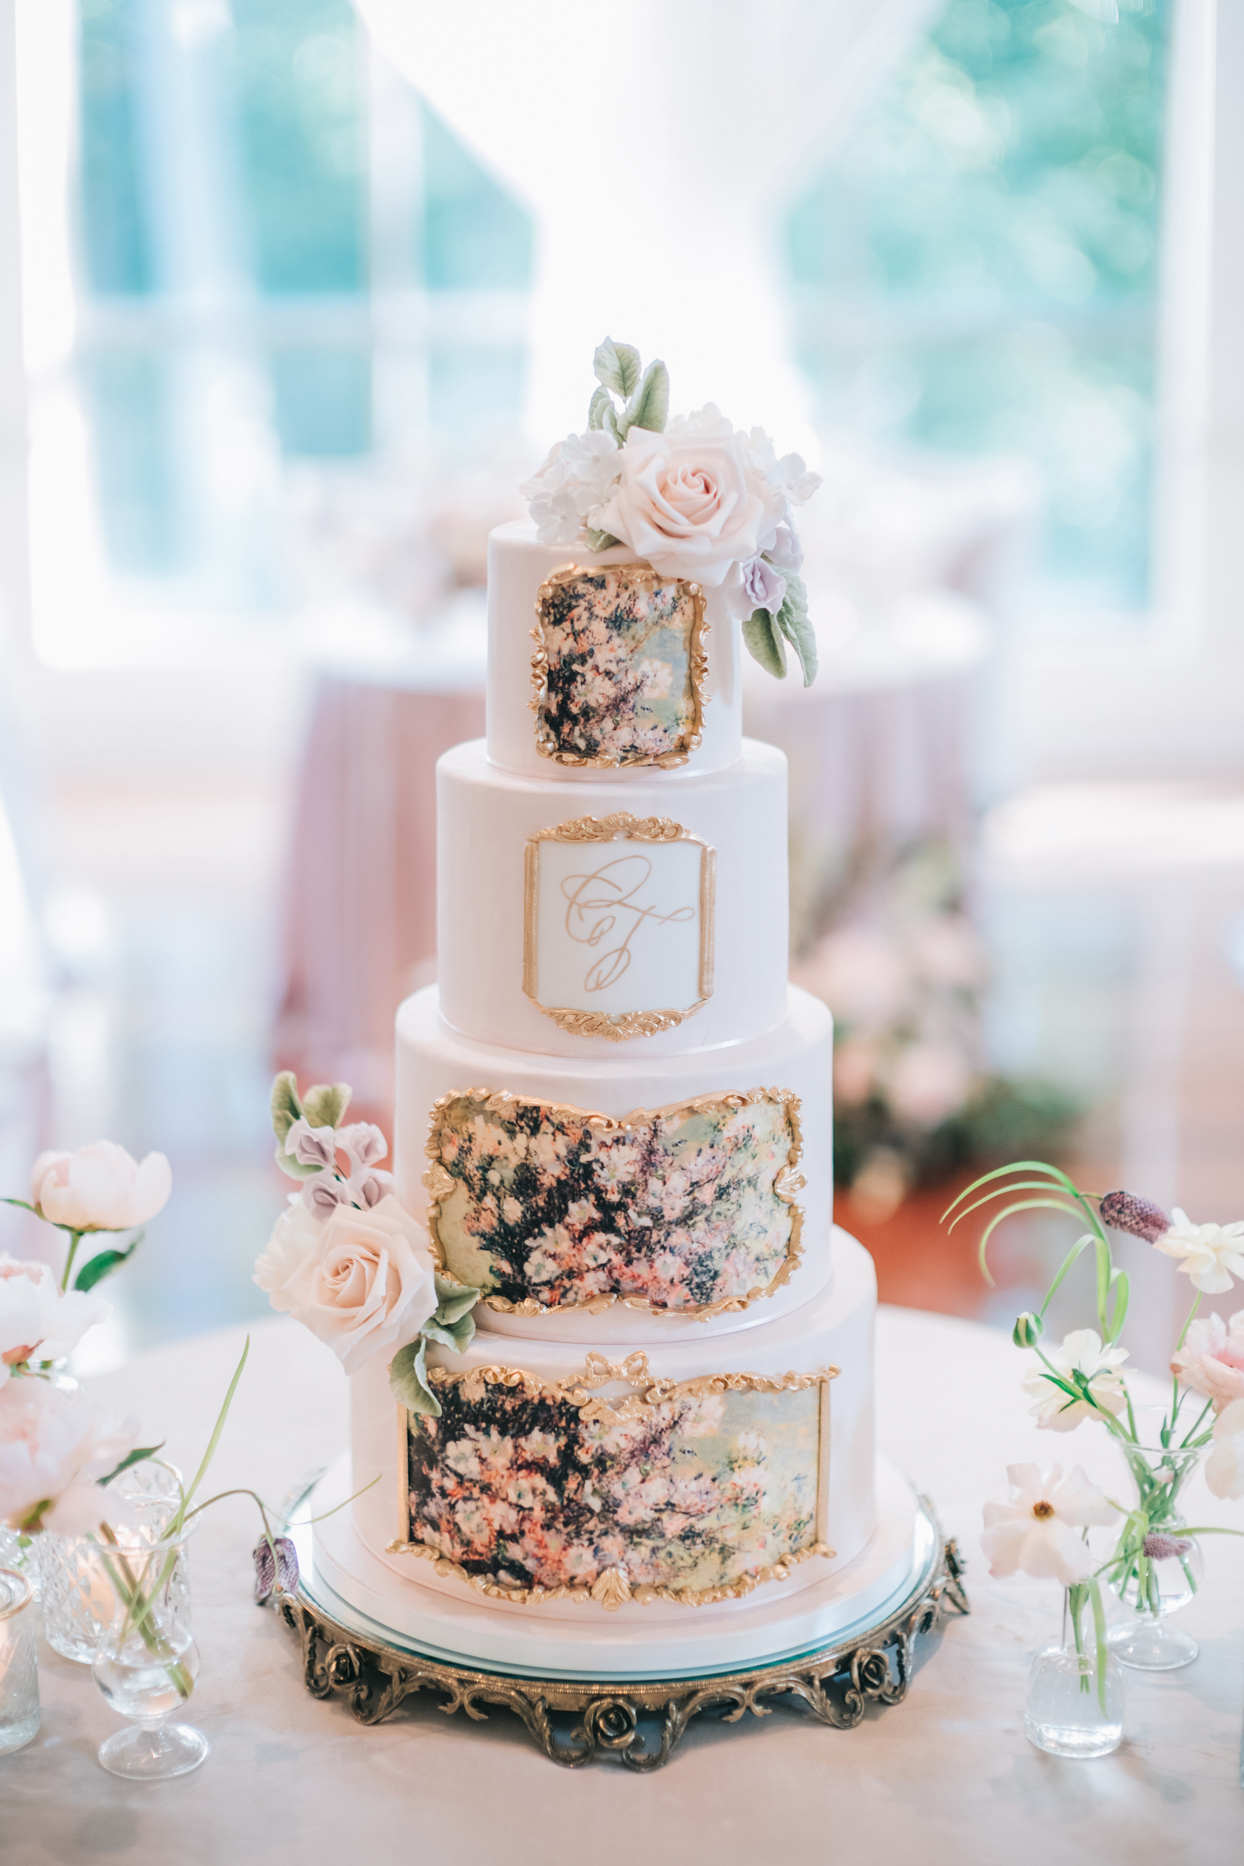 blush four-tier wedding cake embellished with gold filigree and monet painting